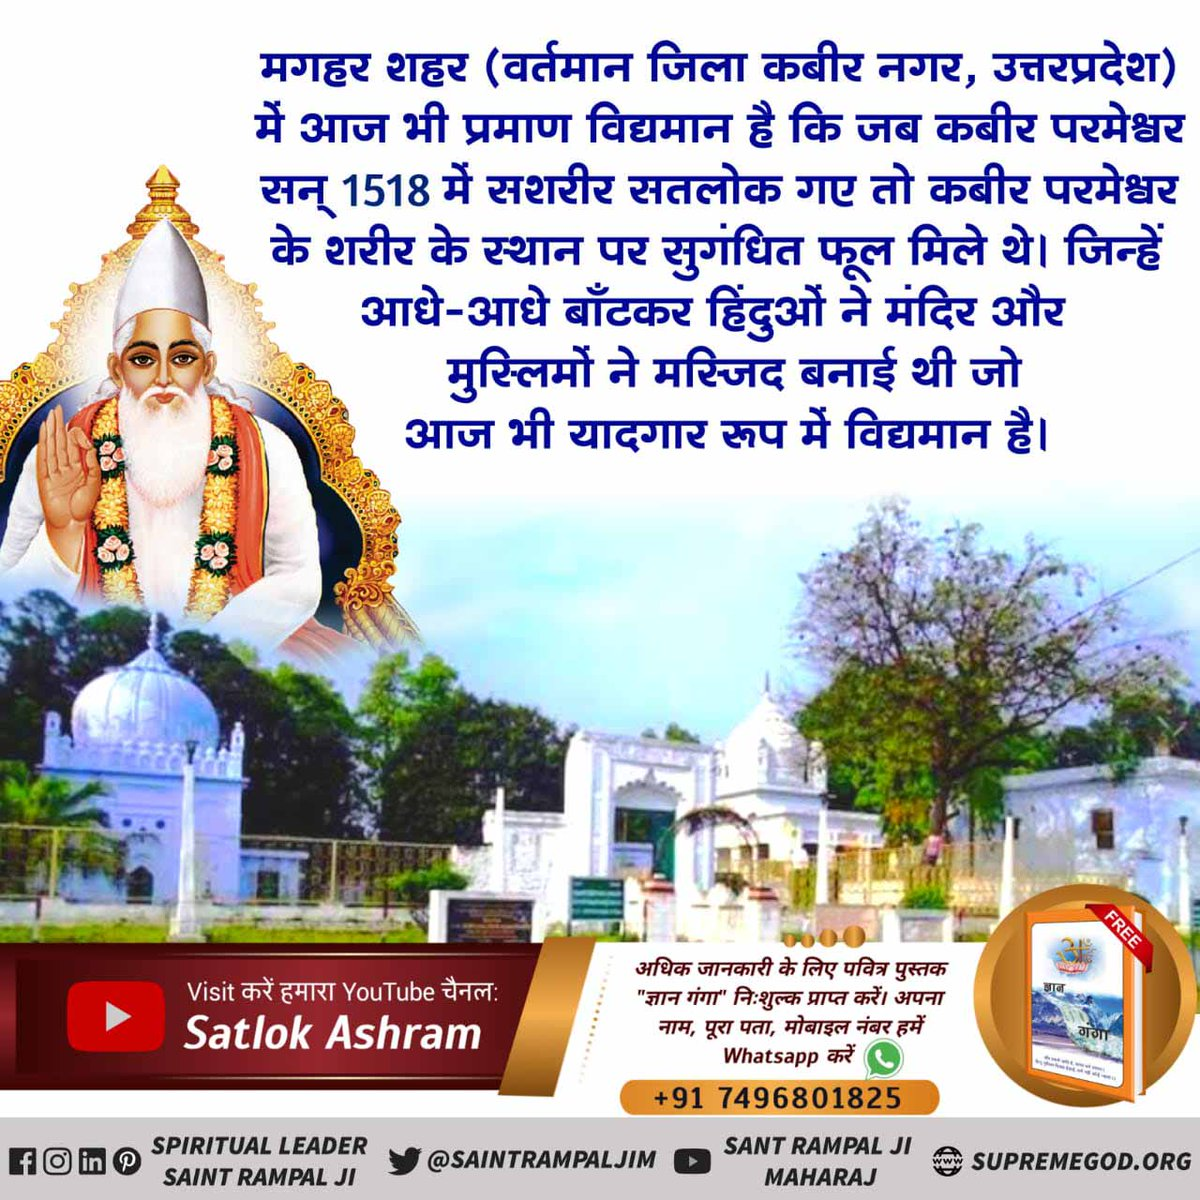 @SaintRampalJiM #GodMorningMonday Kabir Parmeshwar broke the illusion of Hindu religious leaders that one who dies in Maghar becomes a donkey and one who dies in Kashi goes to heaven. Kabir Saheb also broke this confusion. #mondaythoughts  Visit Satlok Ashram YouTube